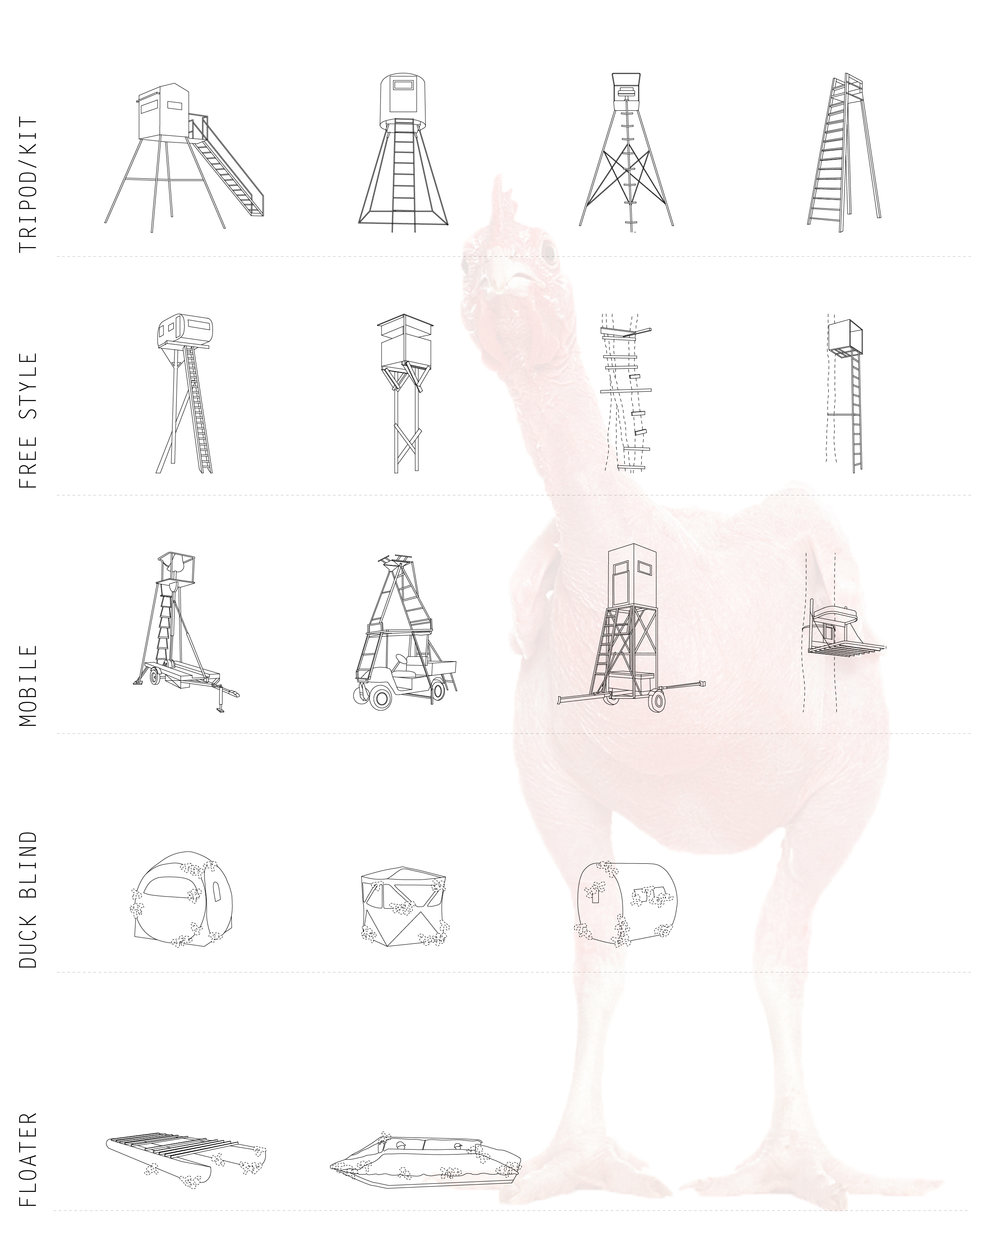 Figure 10. Deer Stand typology study, graphic assistance by RA Chelsea Silvia.